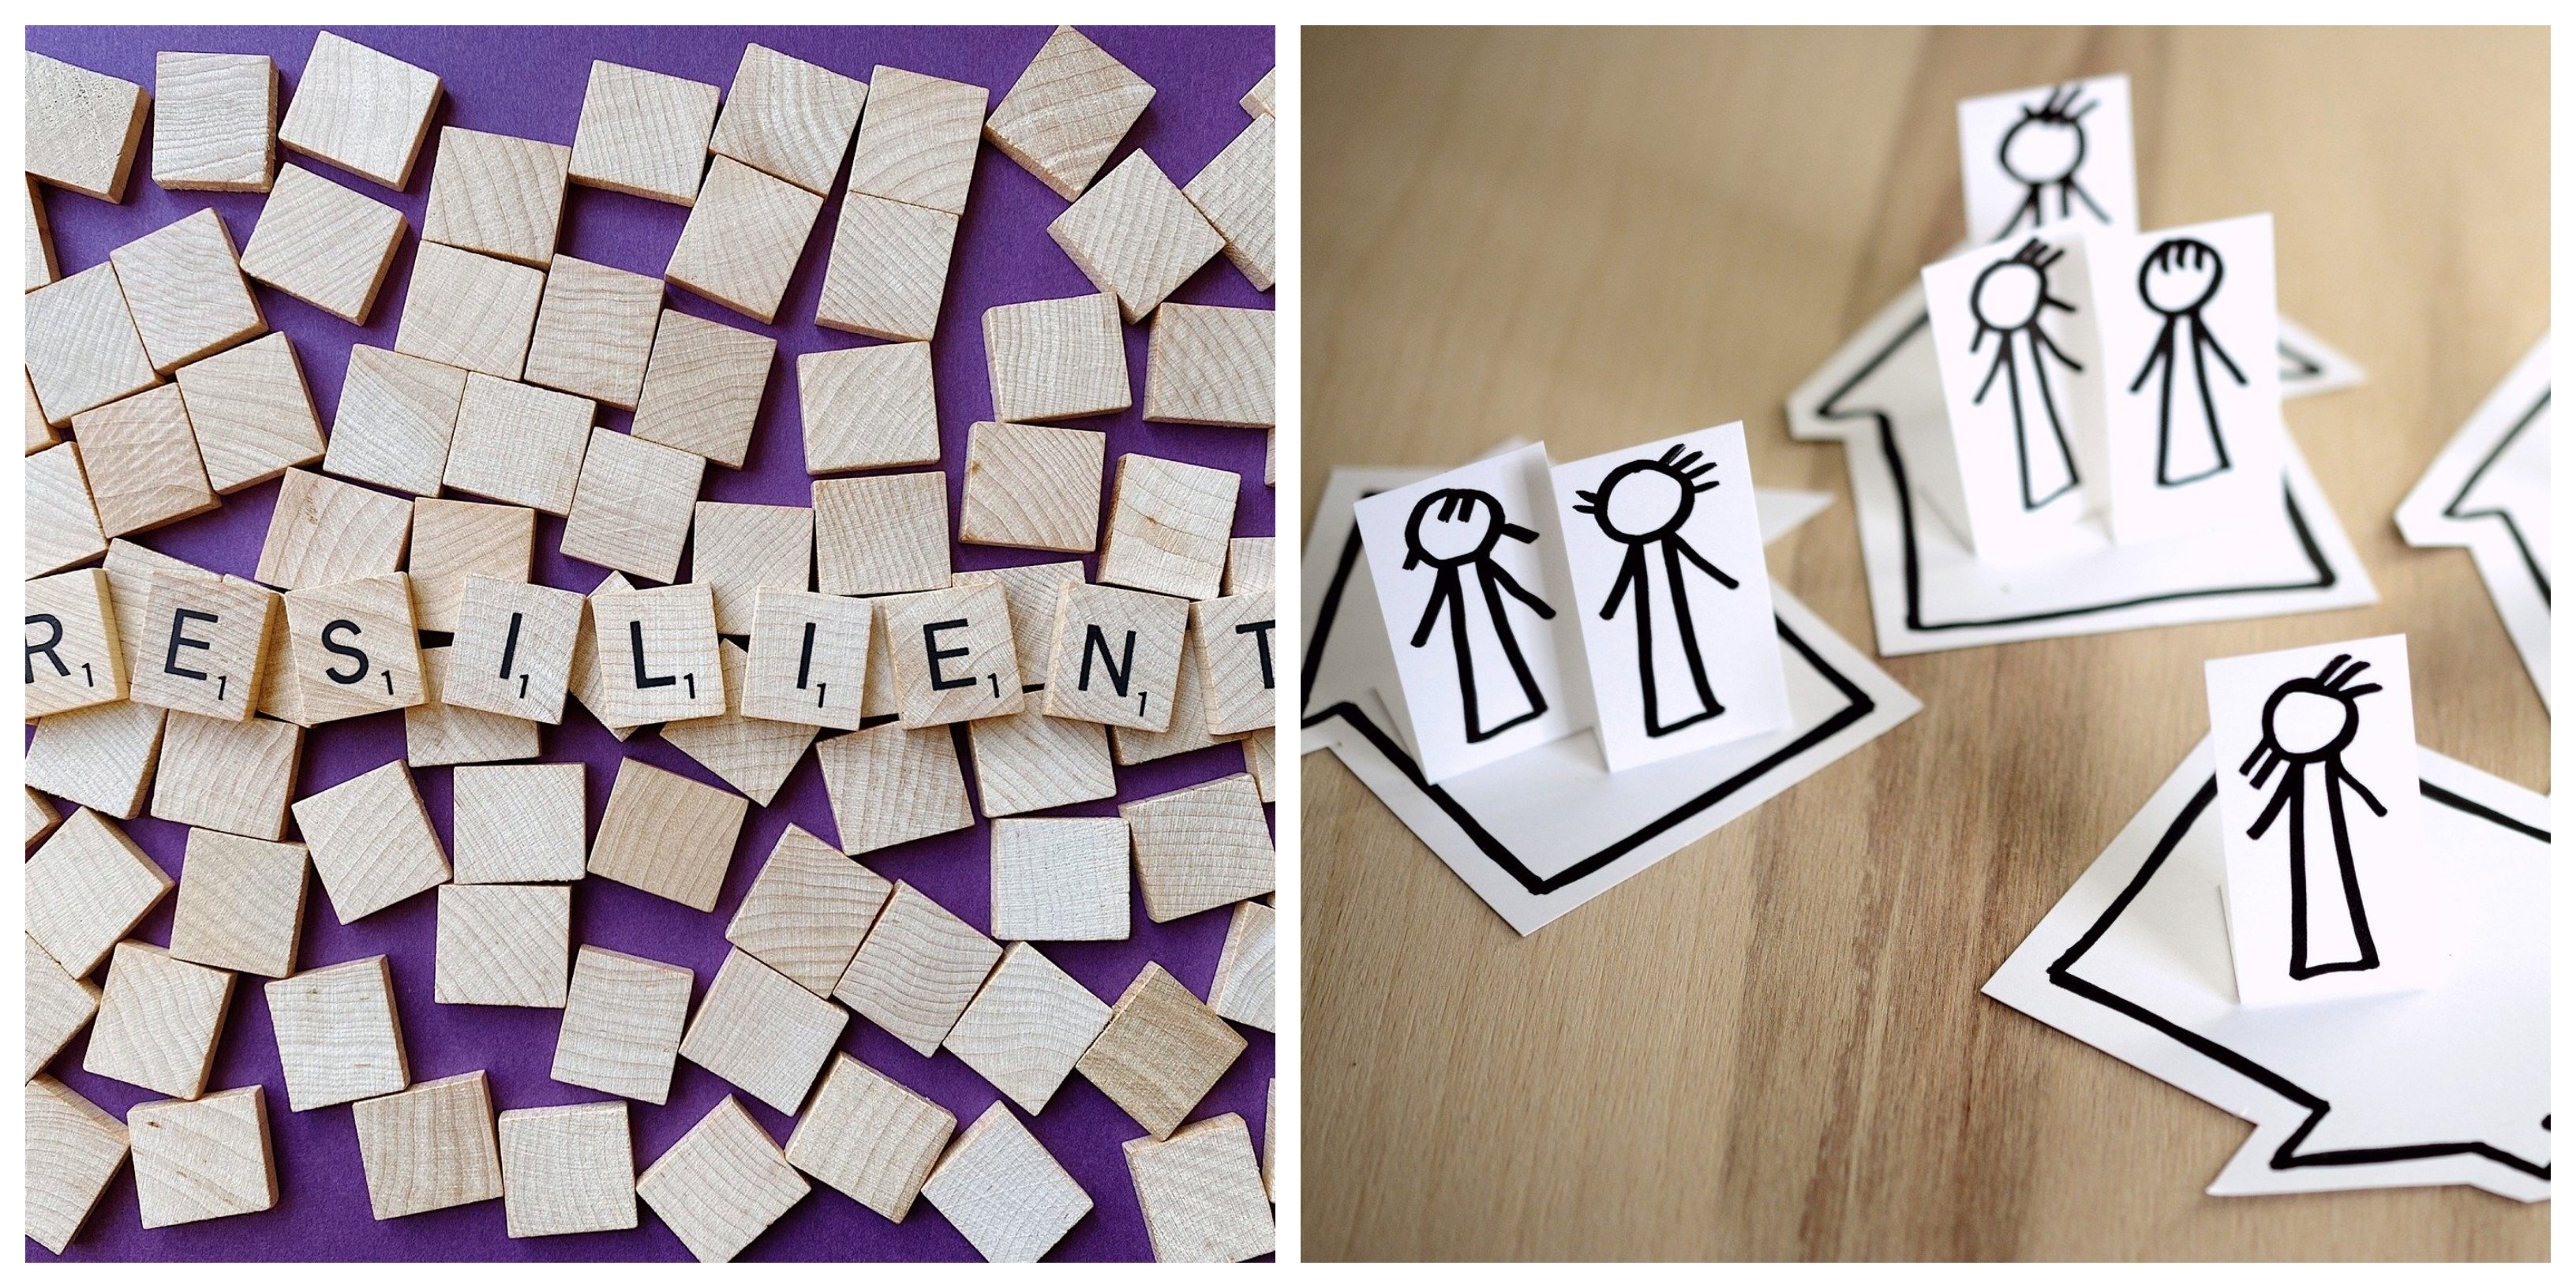 Scrabble letters reading Resilient and illustration of people in self-confinement at home